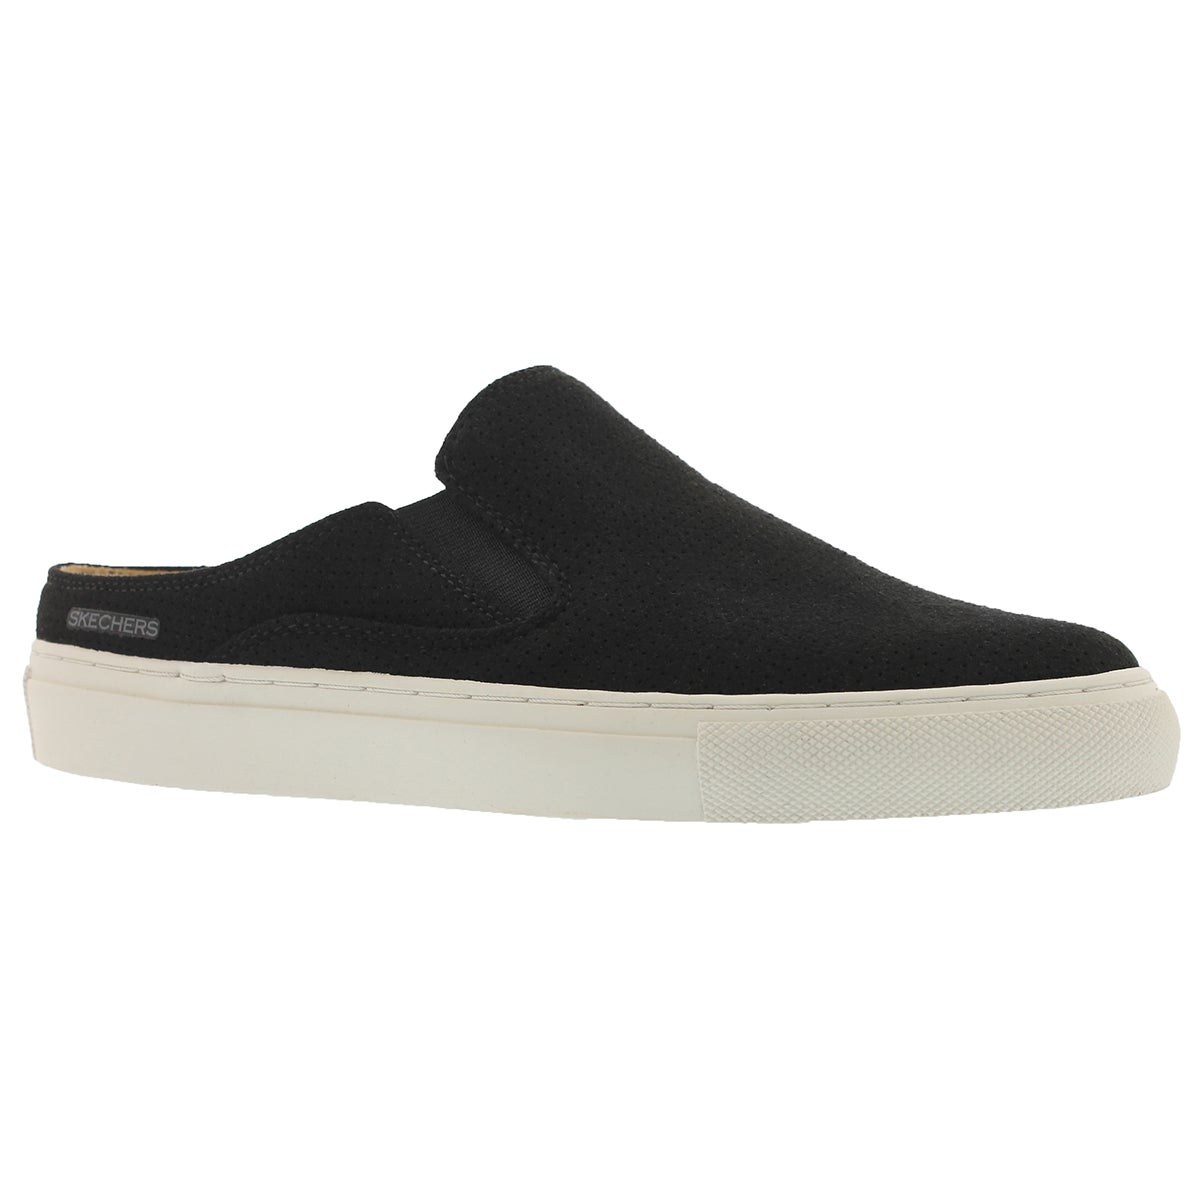 Women's VASO black open back slip on shoes